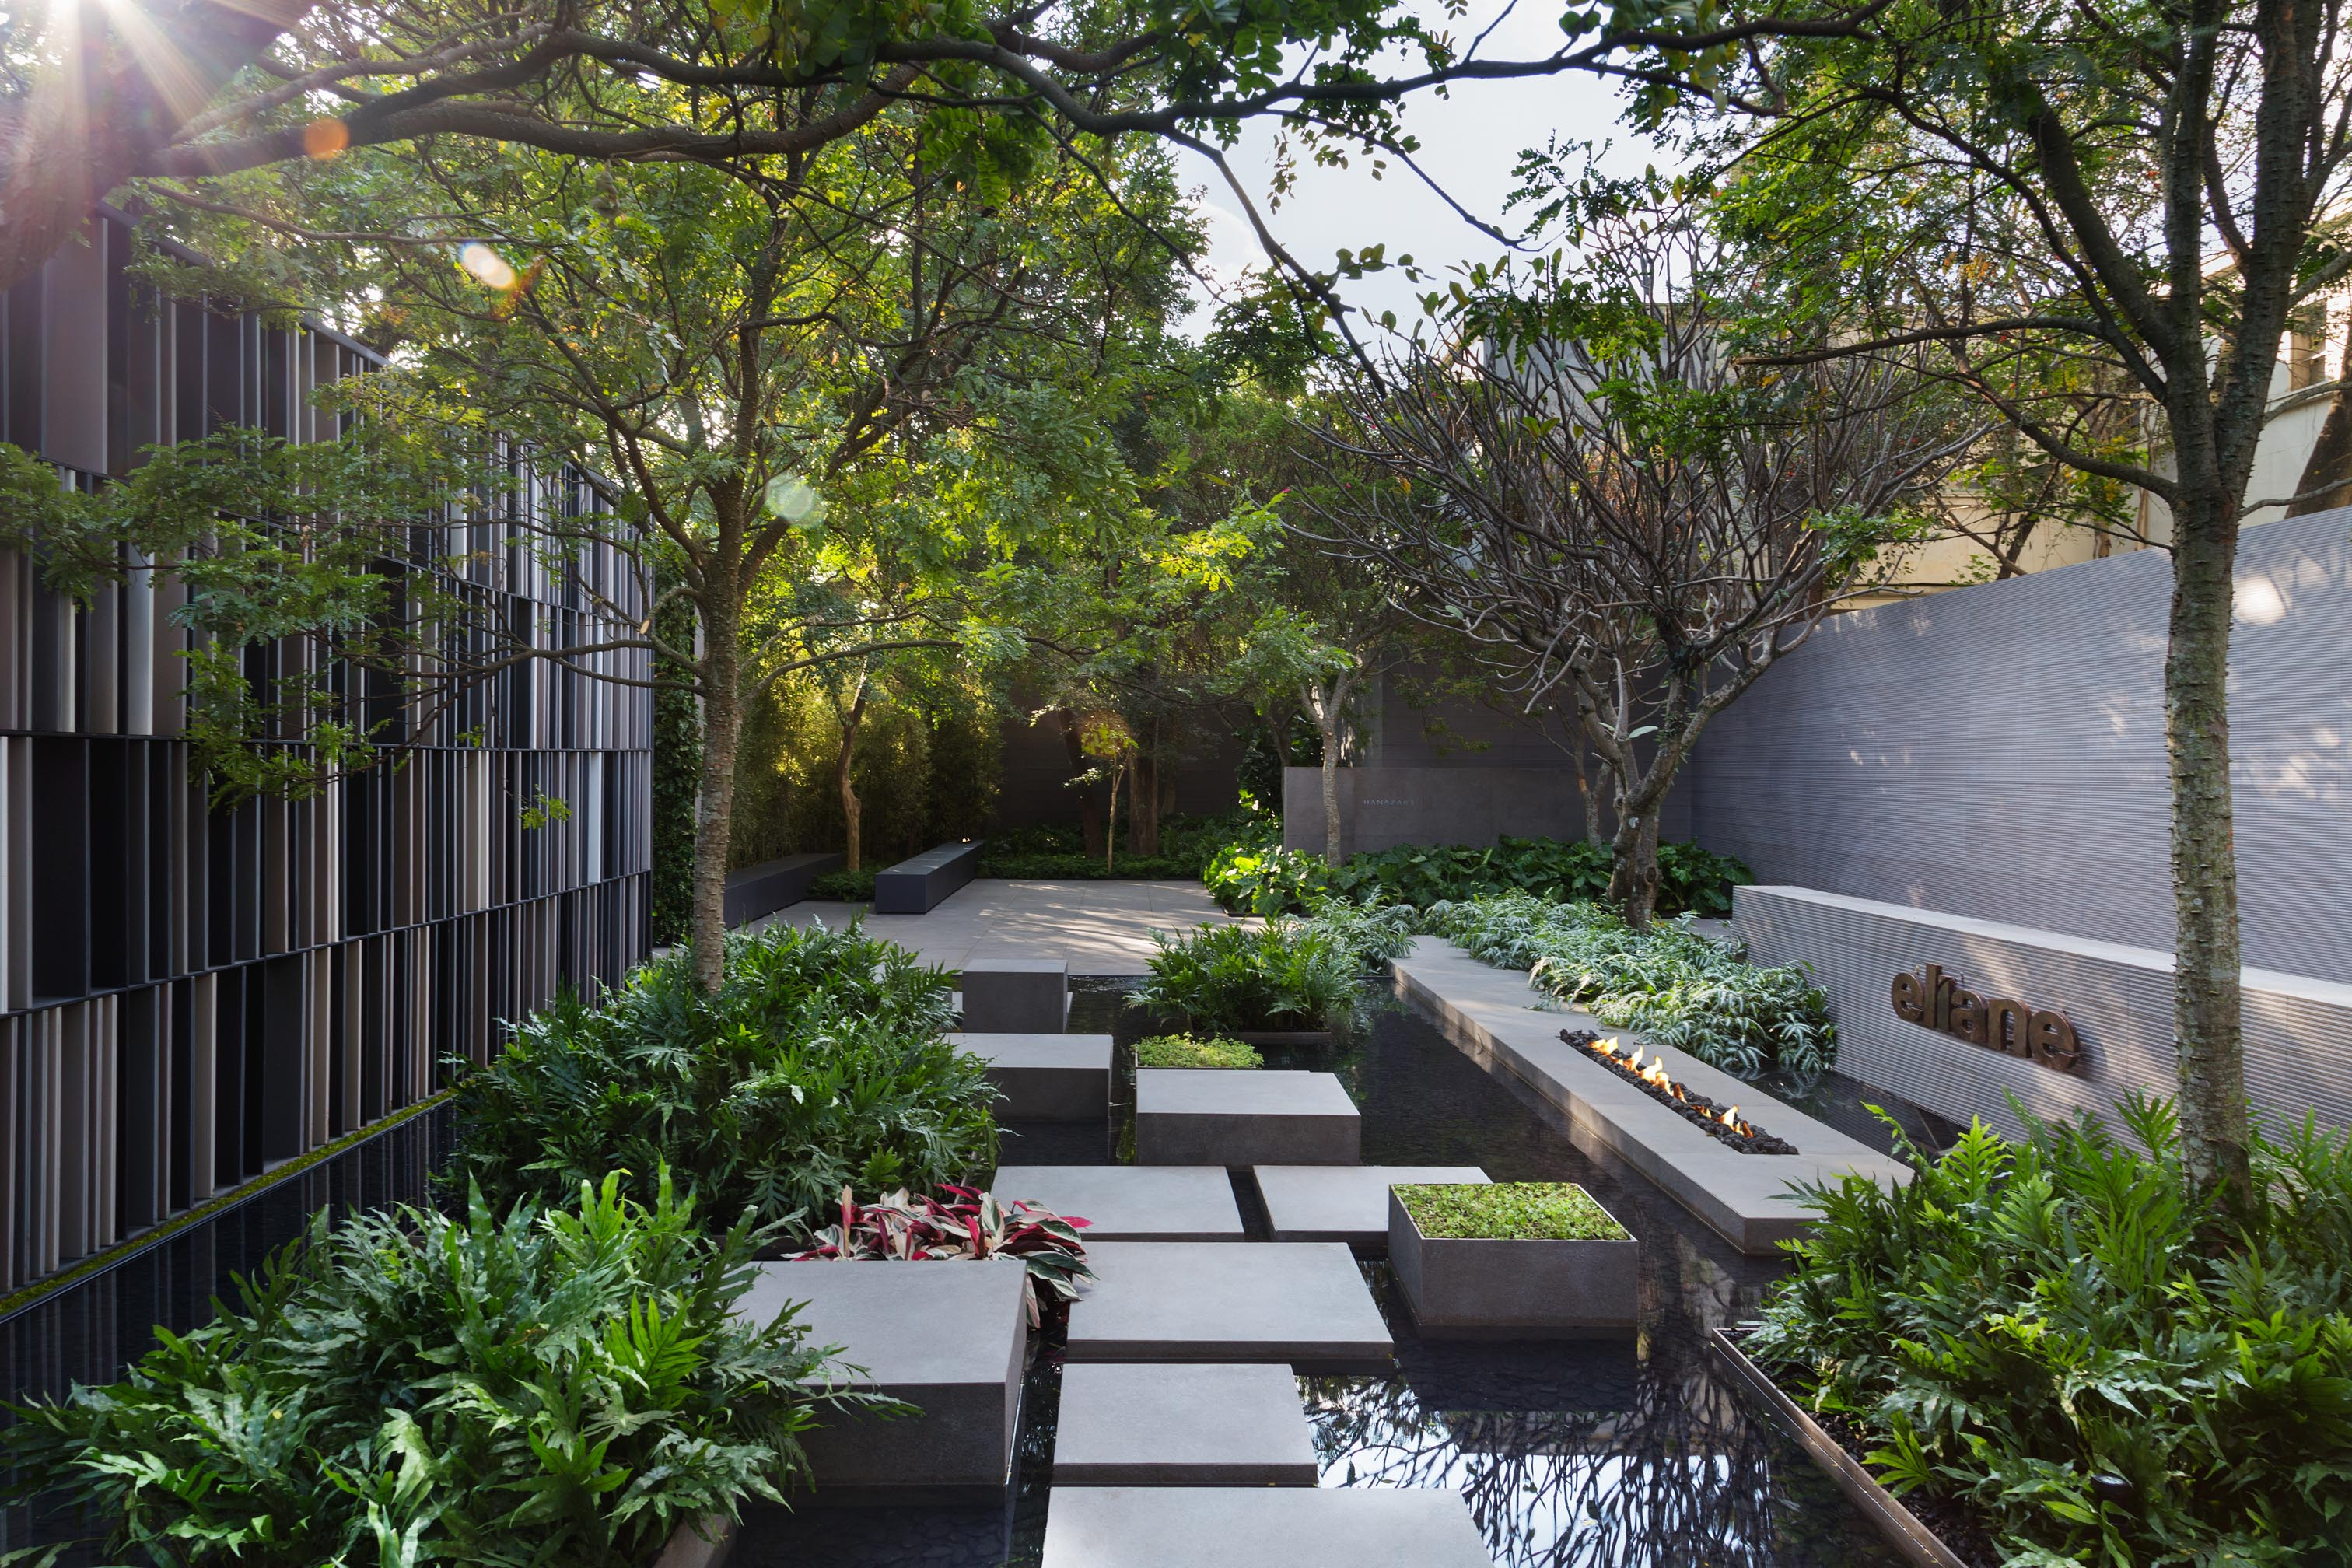 Alex hanazaki a brazilian landscape architect who won a for Society of landscape architects